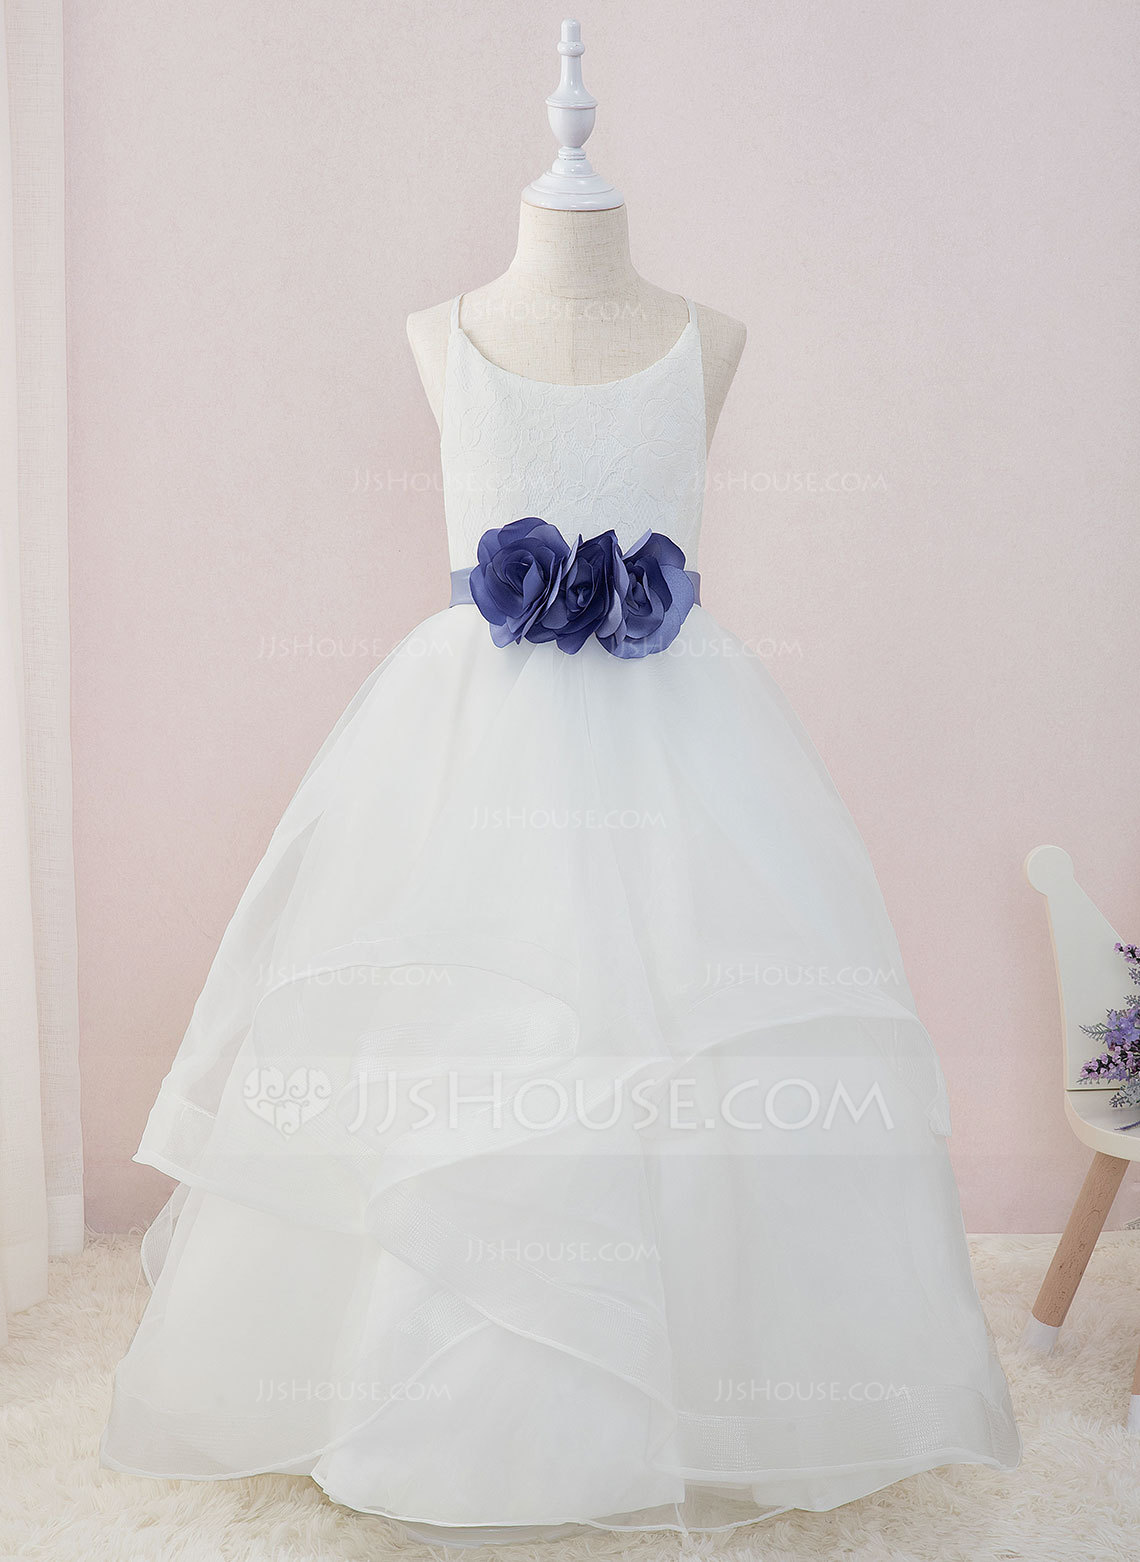 Ball-Gown/Princess Floor-length Flower Girl Dress - Organza/Satin/Lace Sleeveless Scoop Neck With Sash/Flower(s) (Detachable sash)